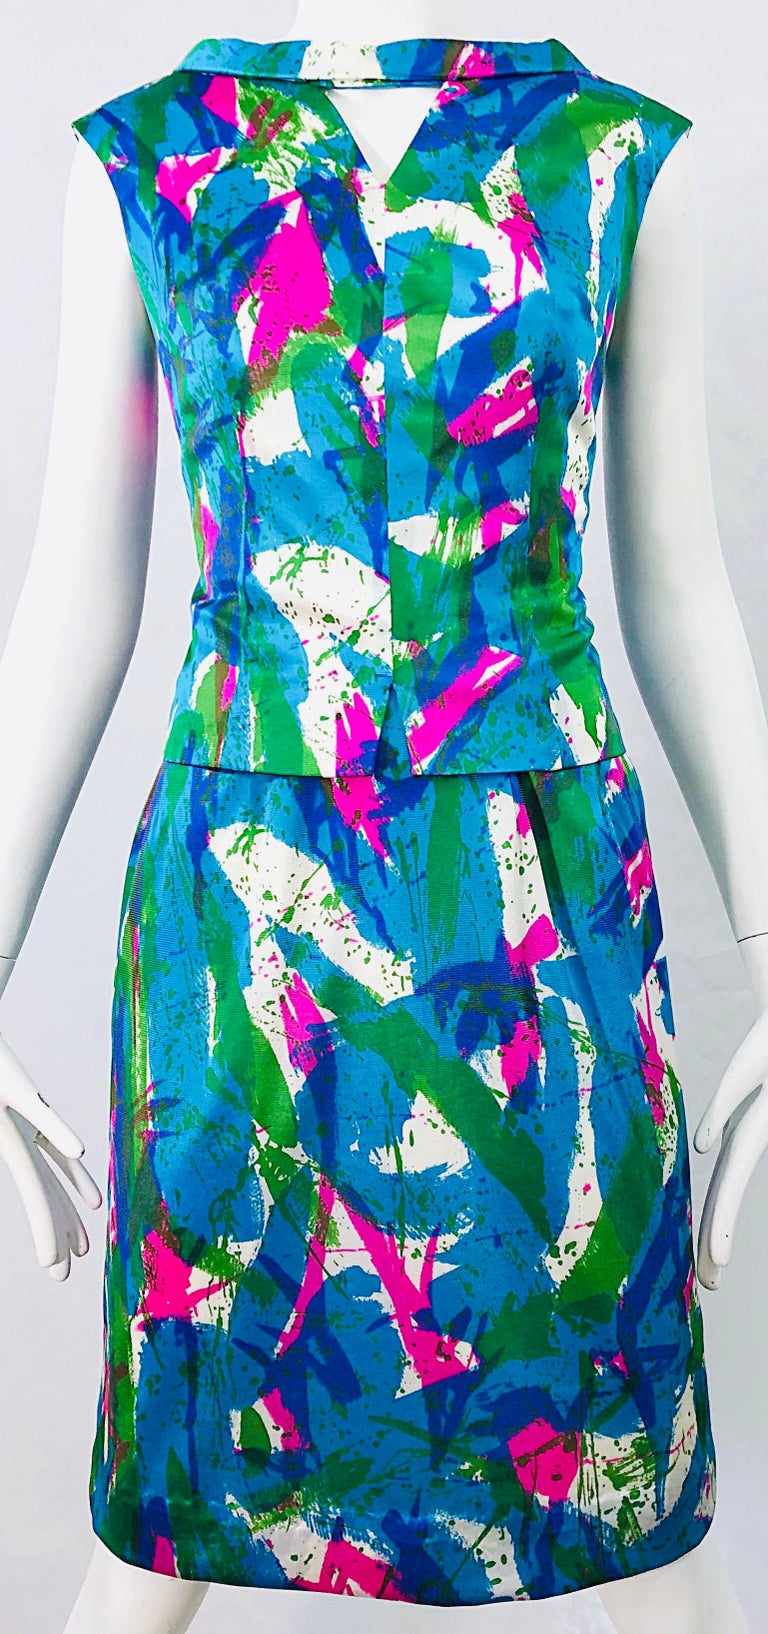 Chic 1960s Neon Abstract Print Two Piece Vintage 60s Sheath Dress + Top Blouse  For Sale 7